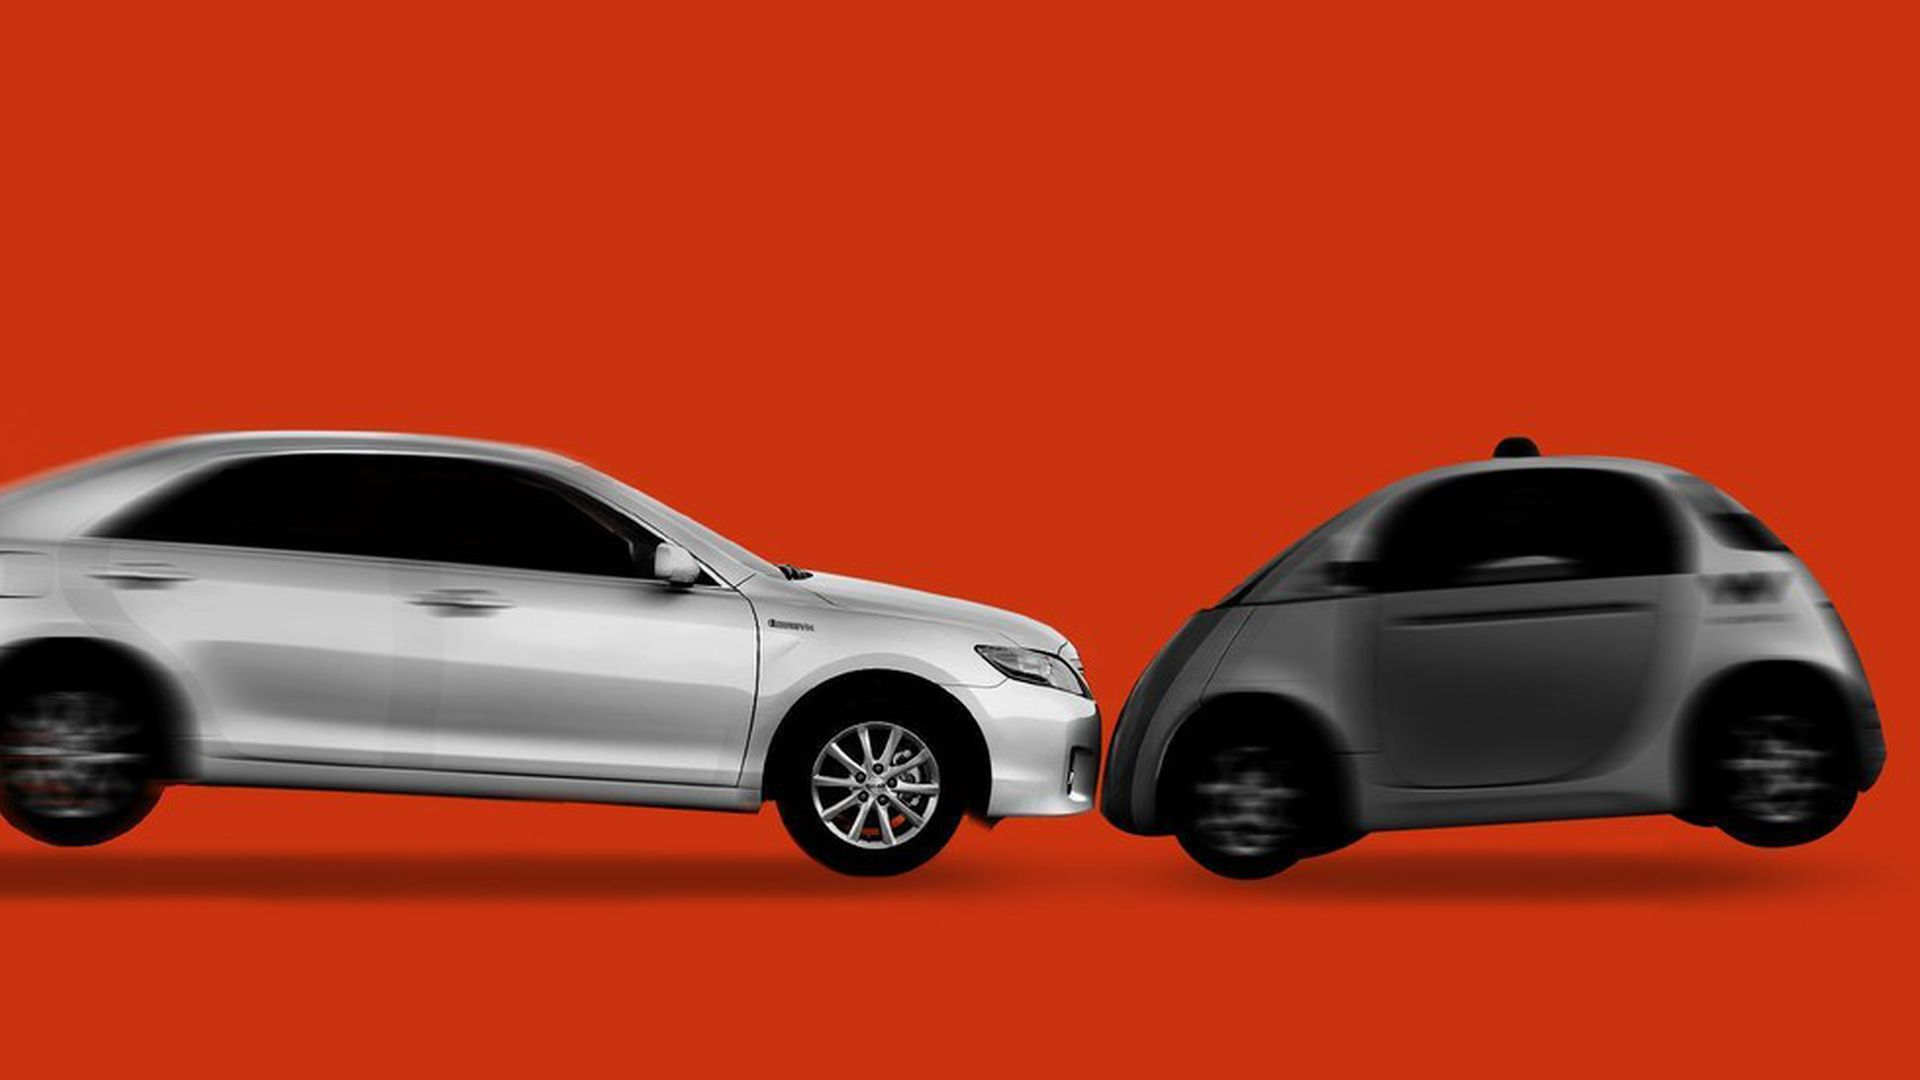 The full history of the Uber-Waymo legal fight - Axios